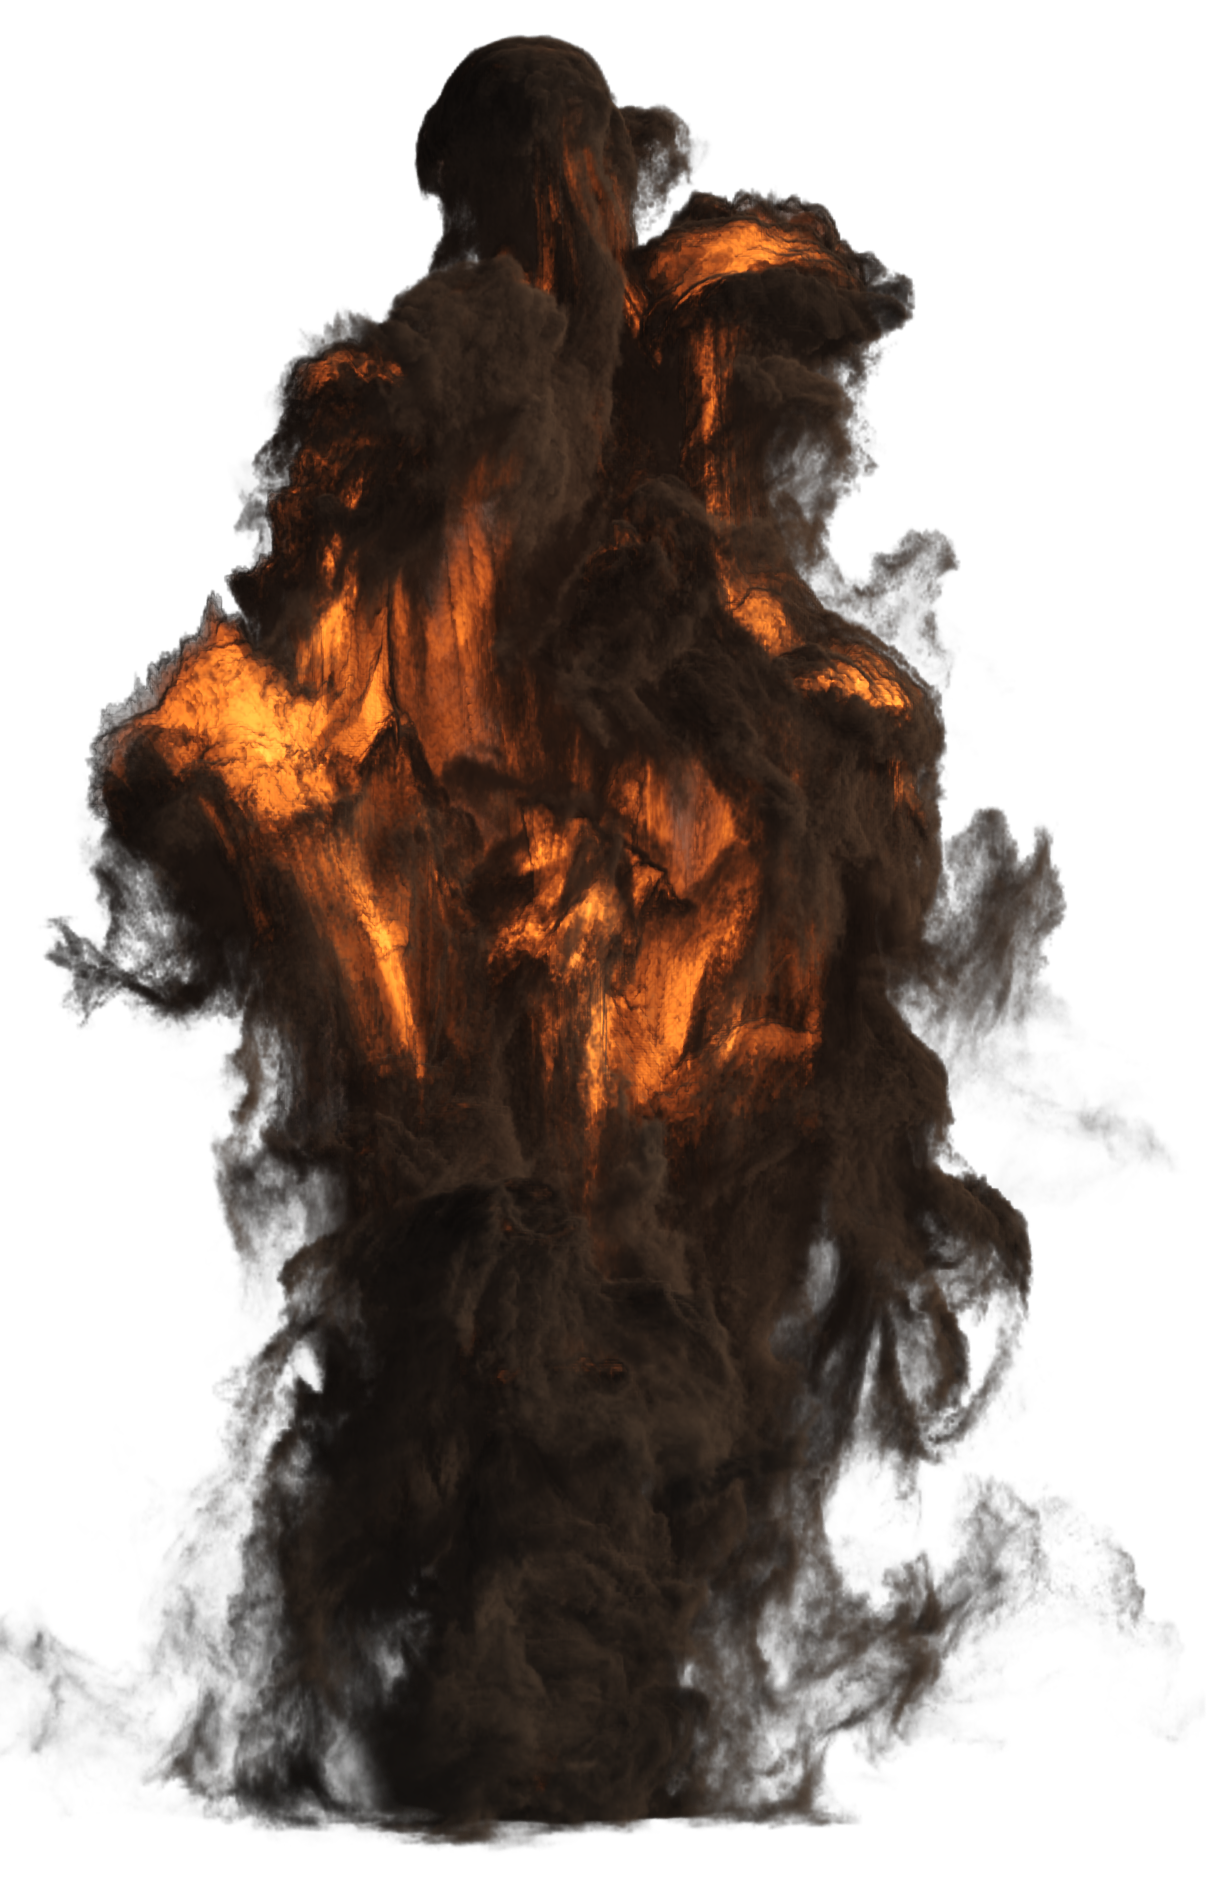 Big explosion with image. Fire and smoke png